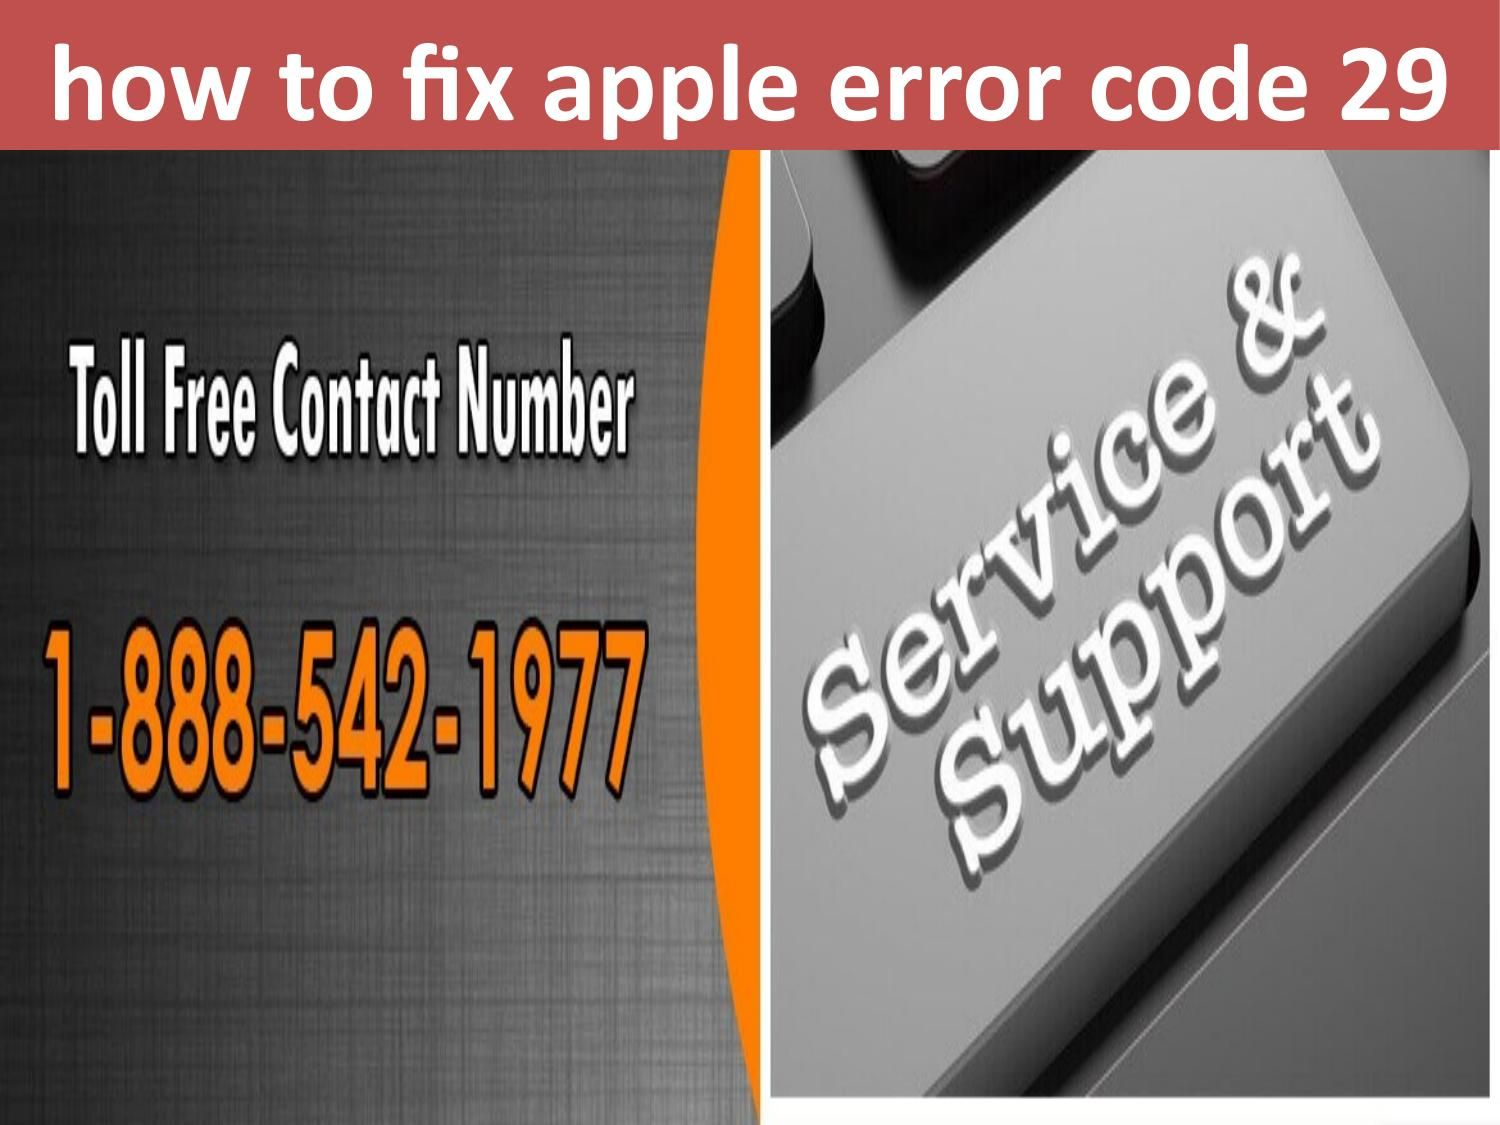 1-888-211-0387 how to fix apple error code 29 | Projects to